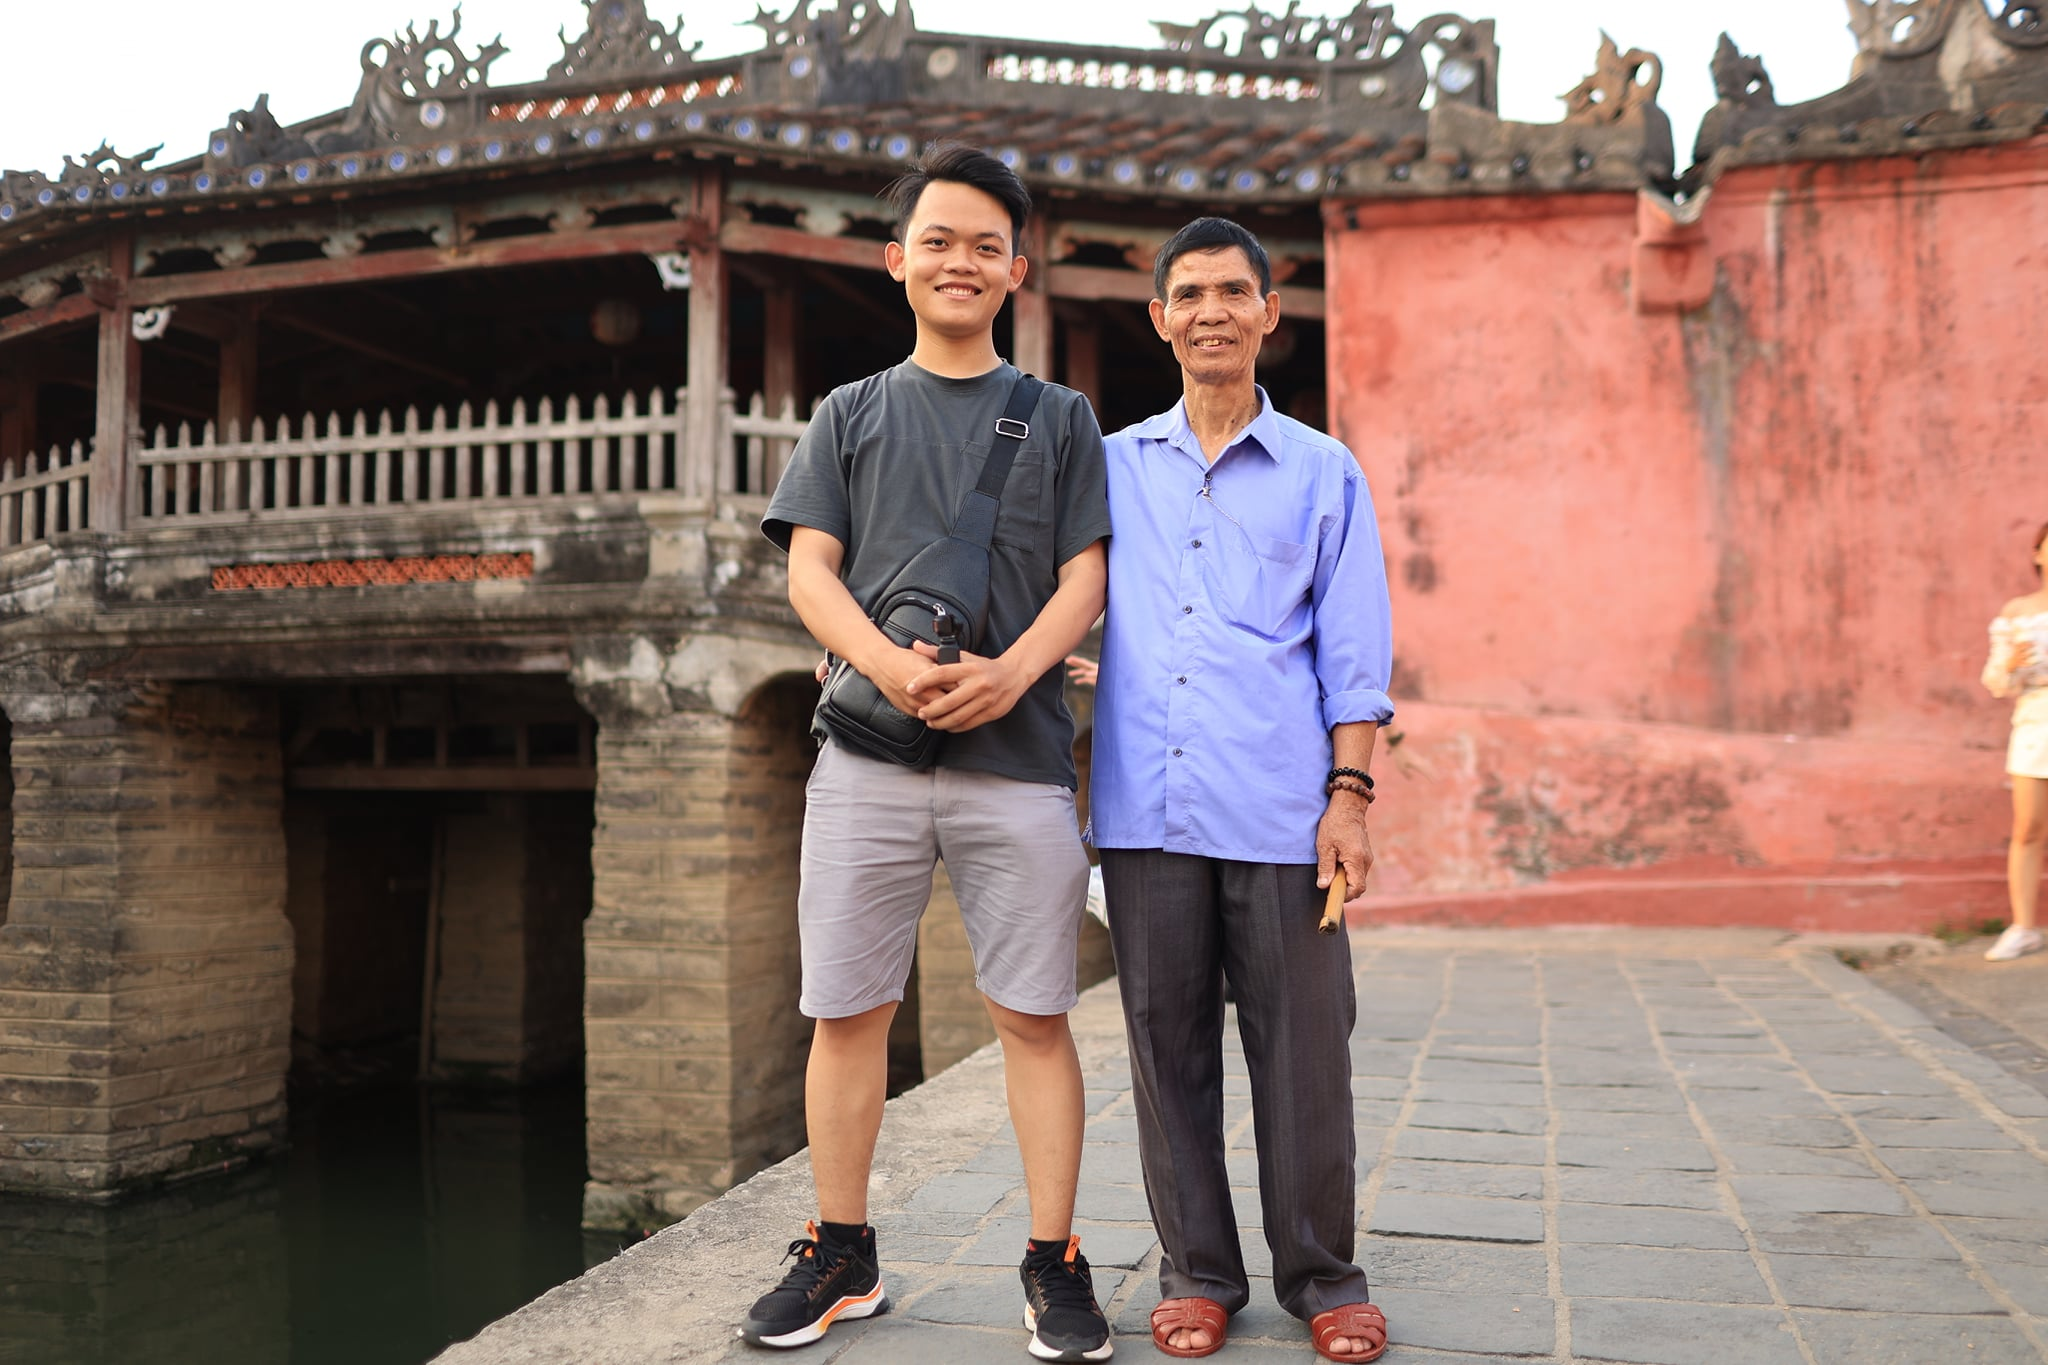 Chu Dinh Hoa (R) and Hoang Tien Dat pose for a photo while visiting Hoi An in April 2021. Photo provided by Hoang Tien Dat